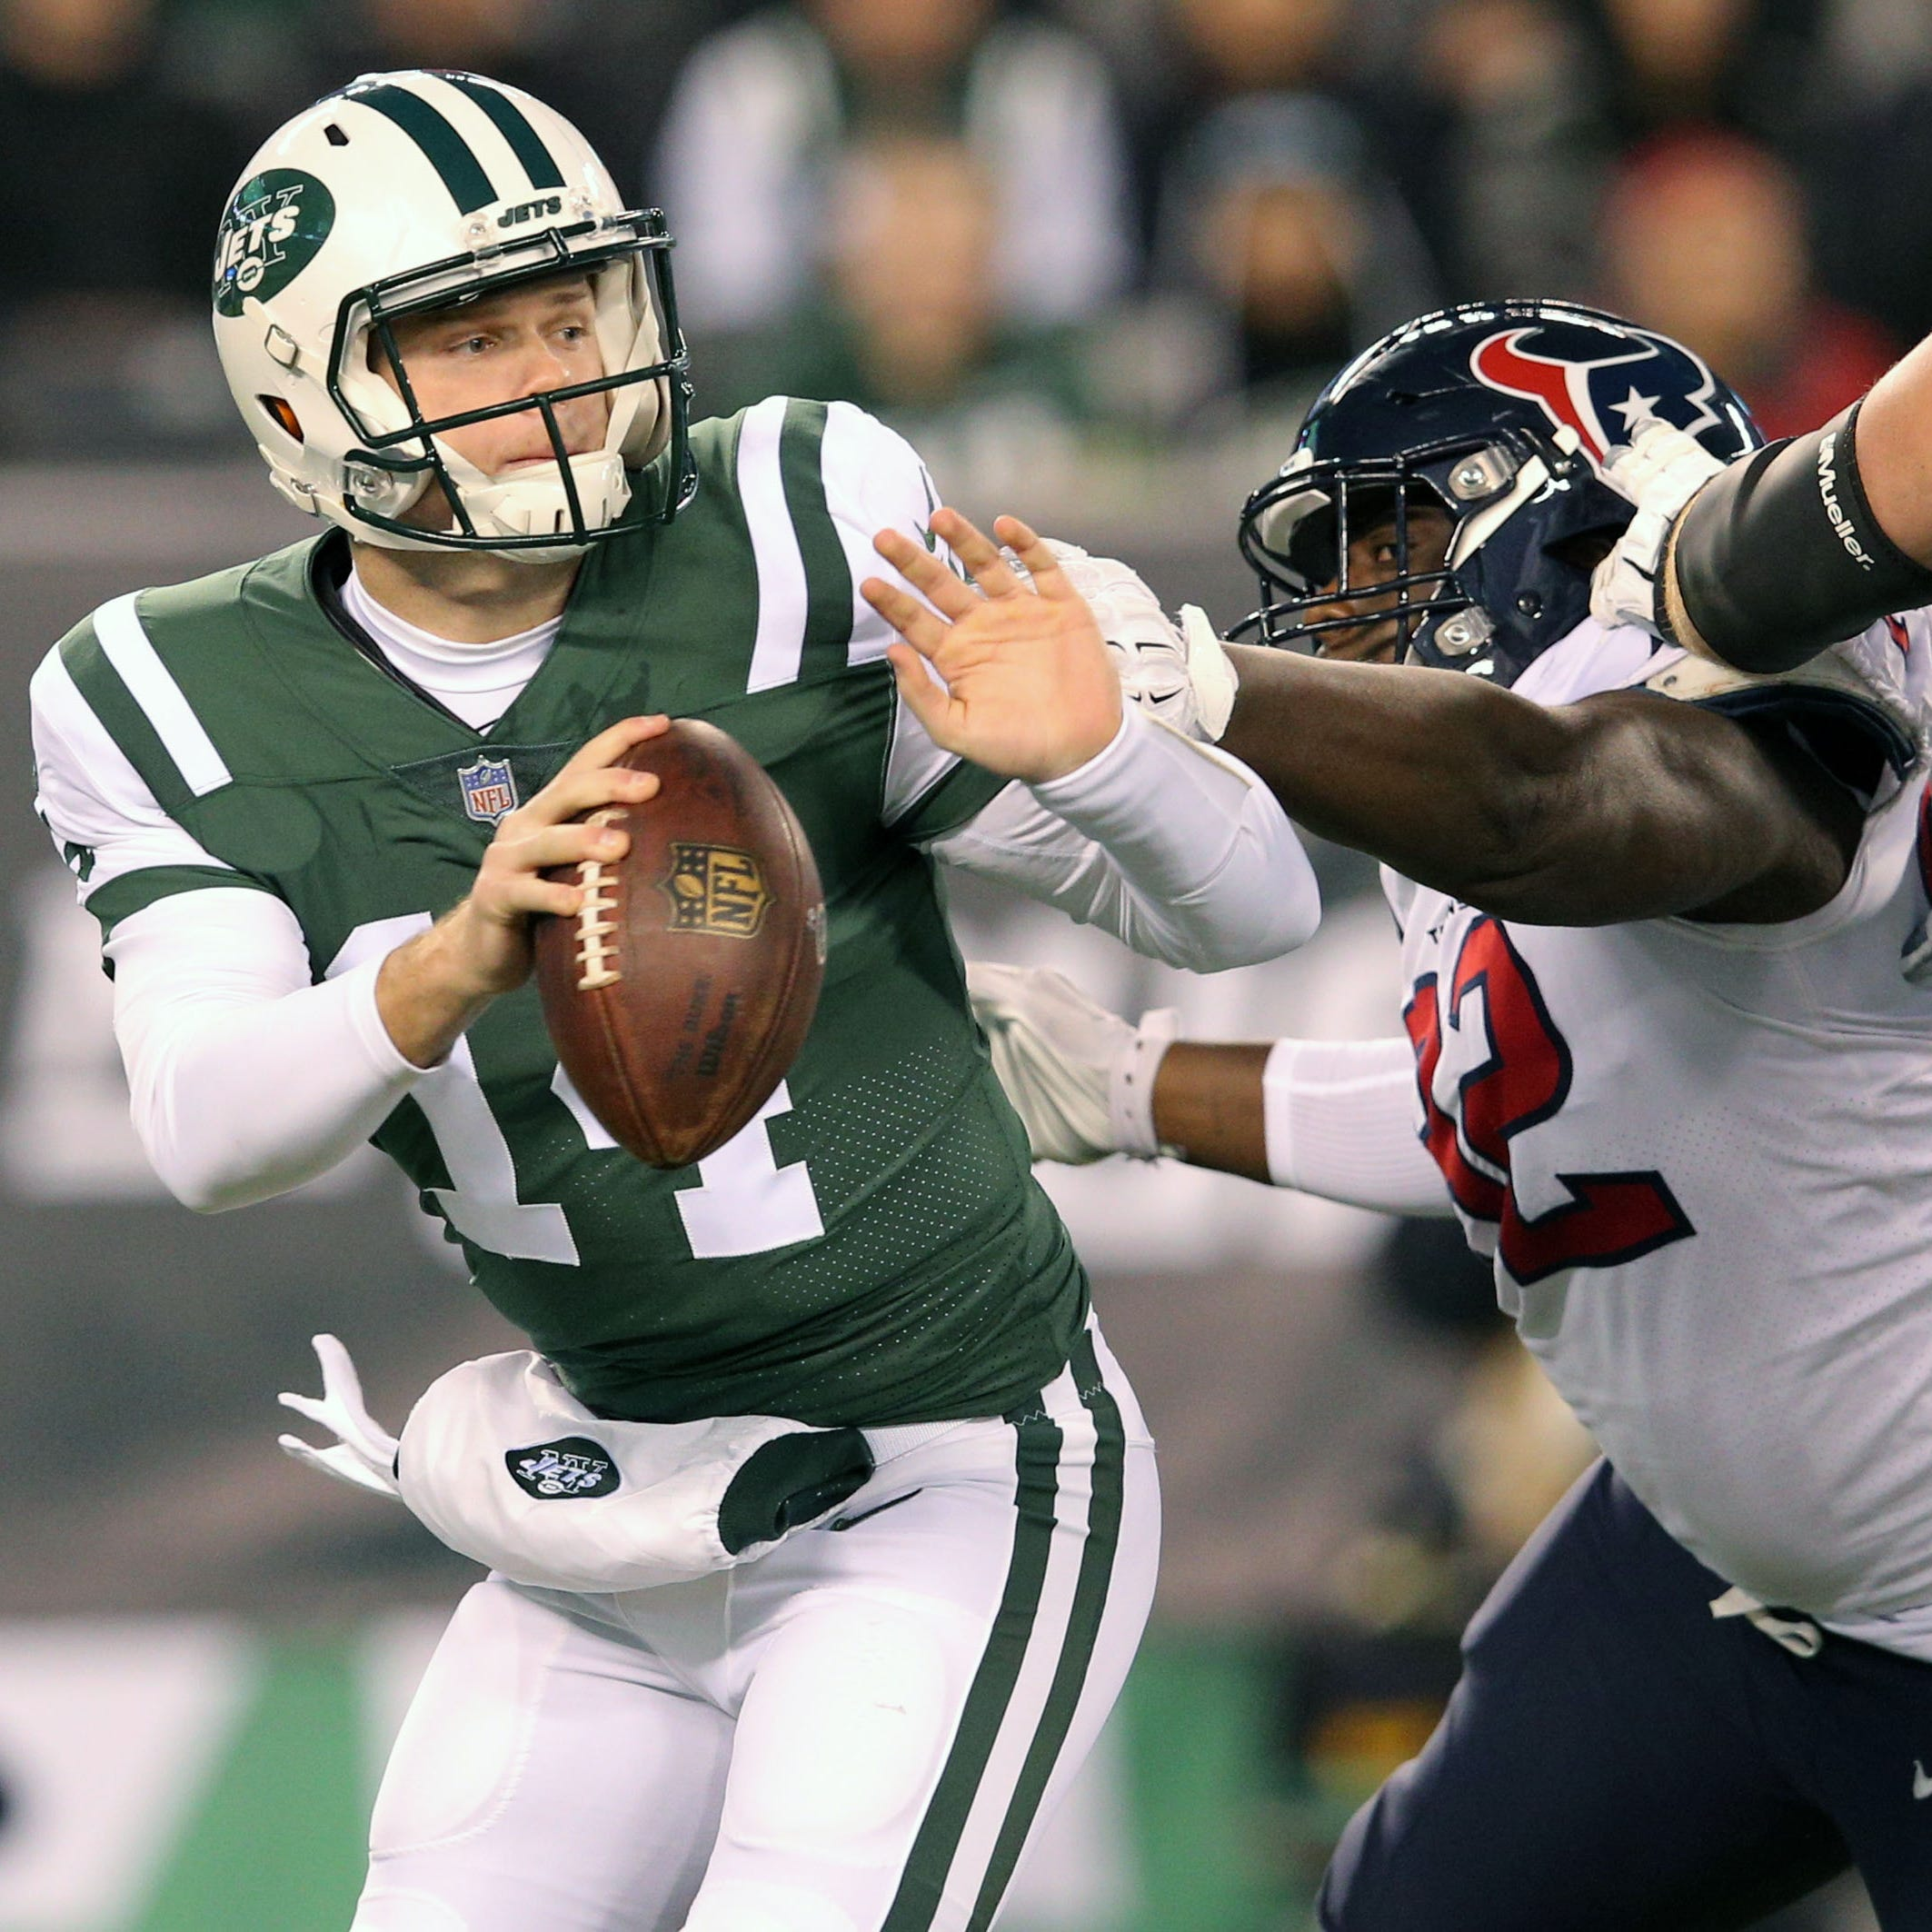 Four reasons Jets fans should be excited about Sam Darnold, despite loss to Texans